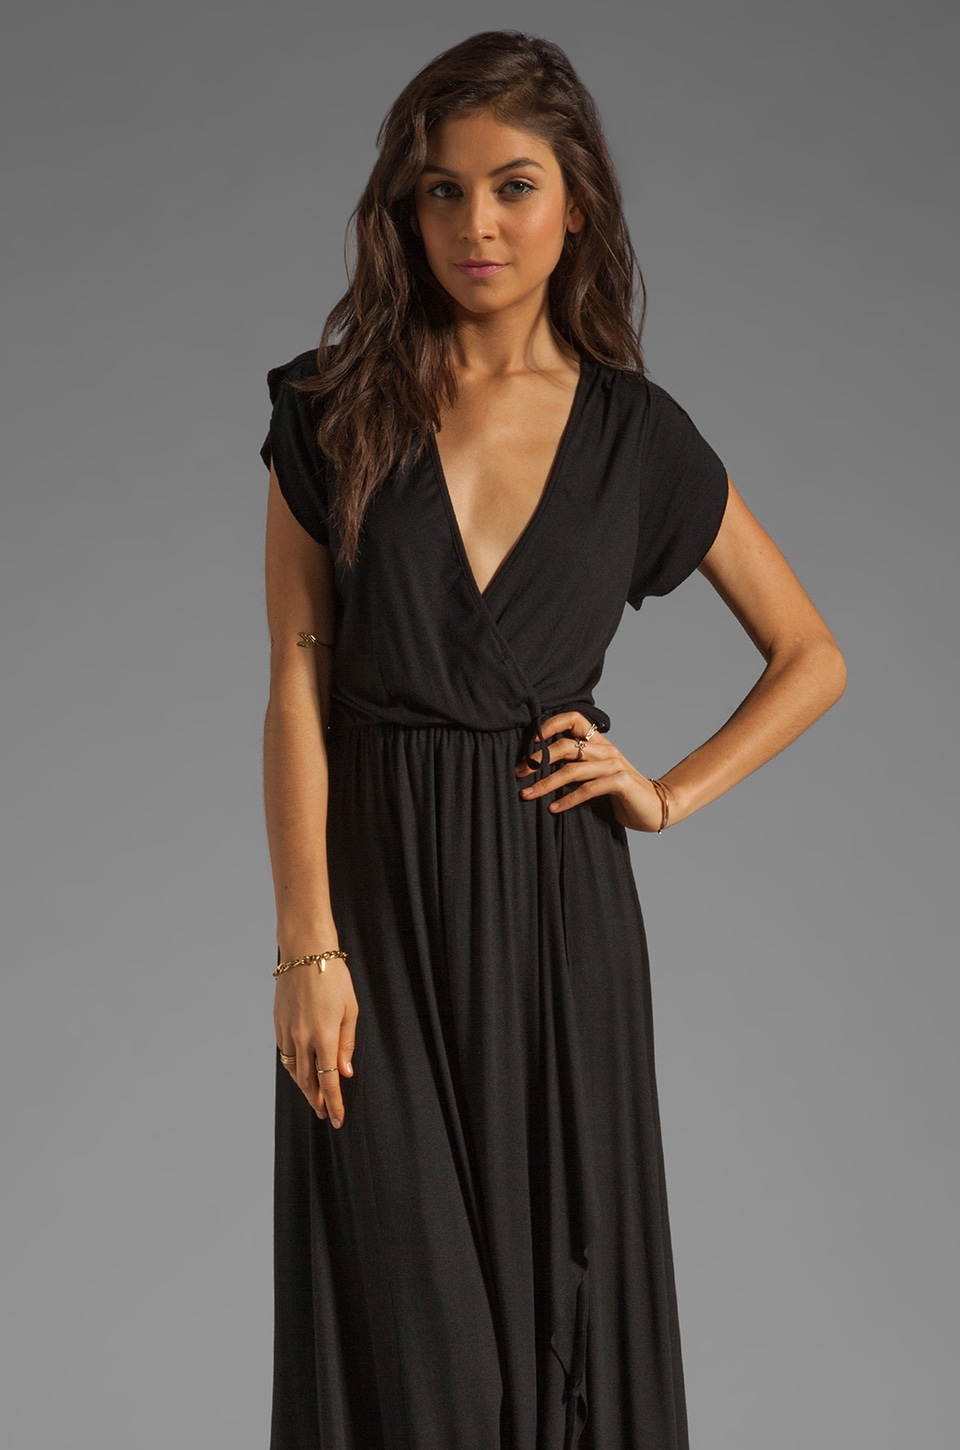 Rachel Pally Perpetua Wrap Dress in Black